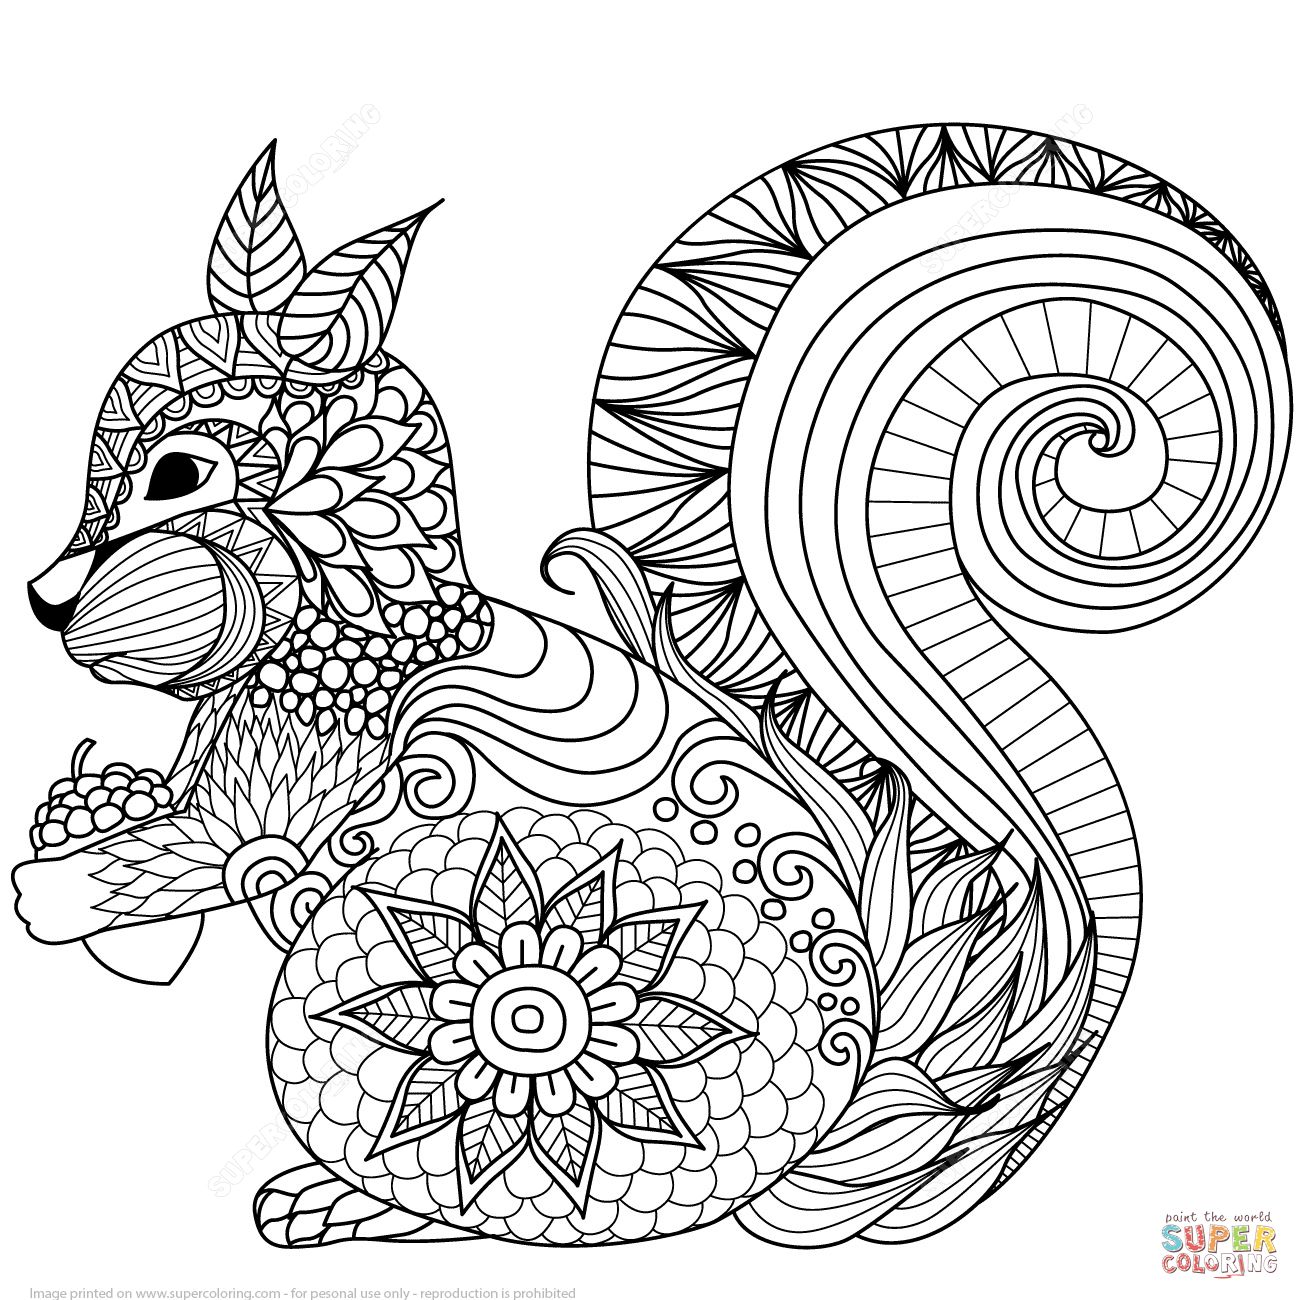 Lovely Squirrel Zentangle coloring page Free Printable Coloring